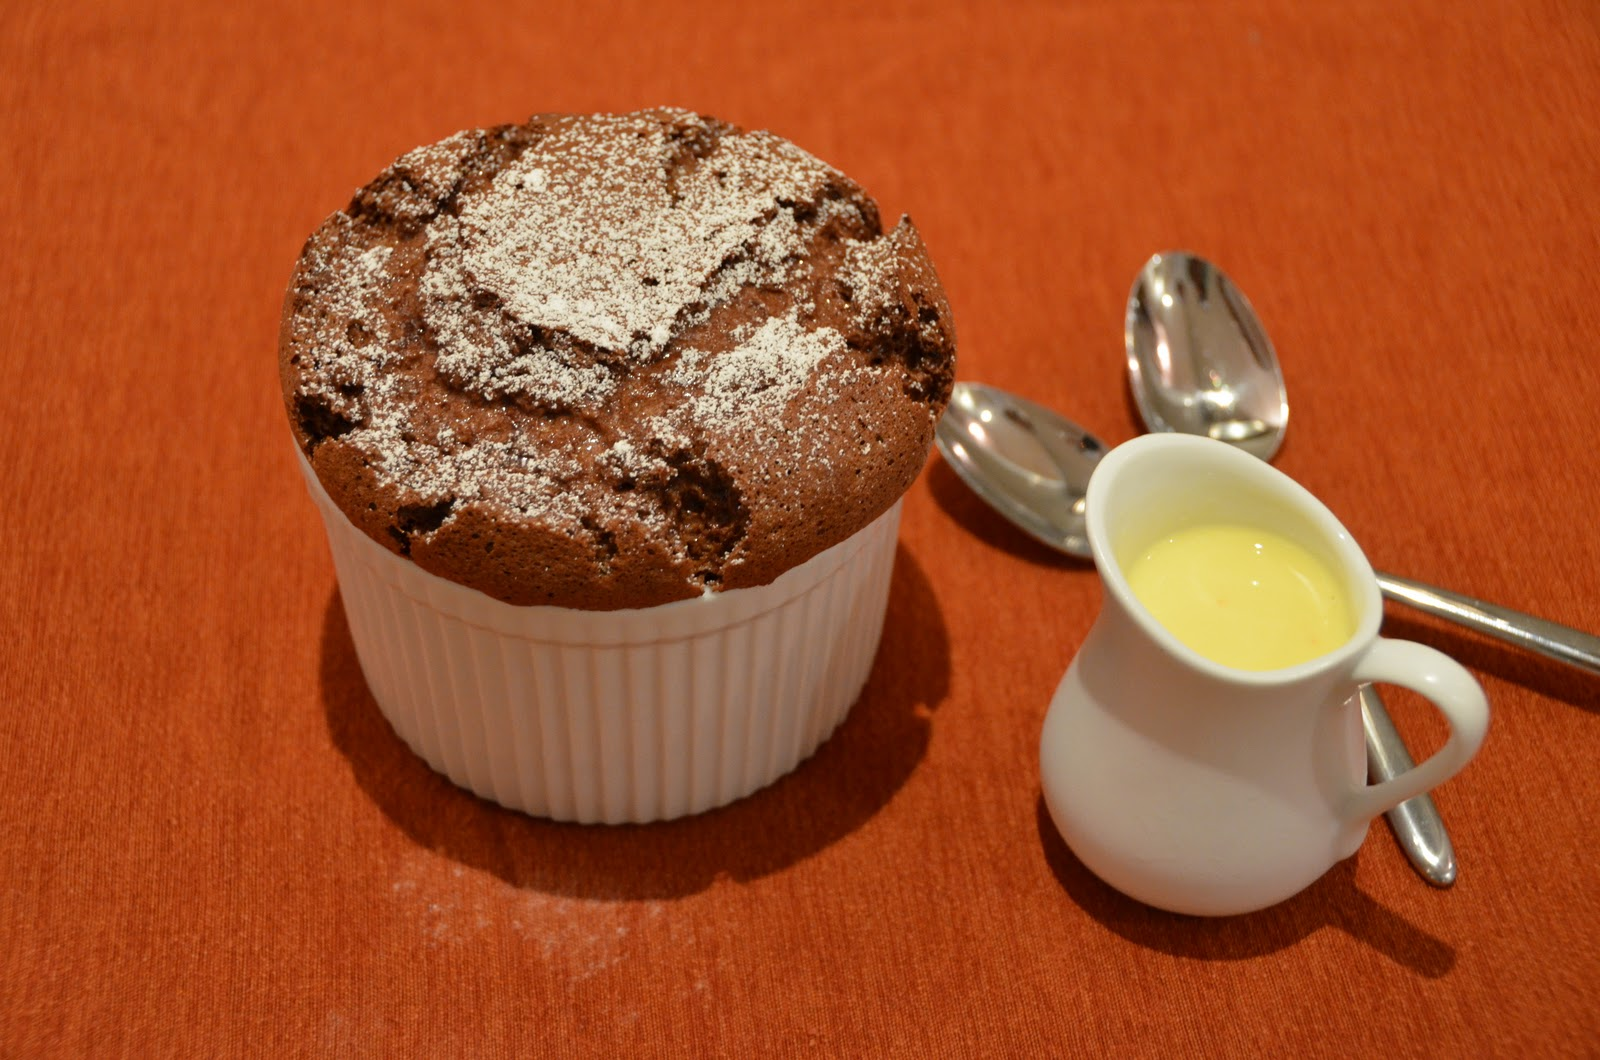 Chocolate soufflé with orange crème anglaise